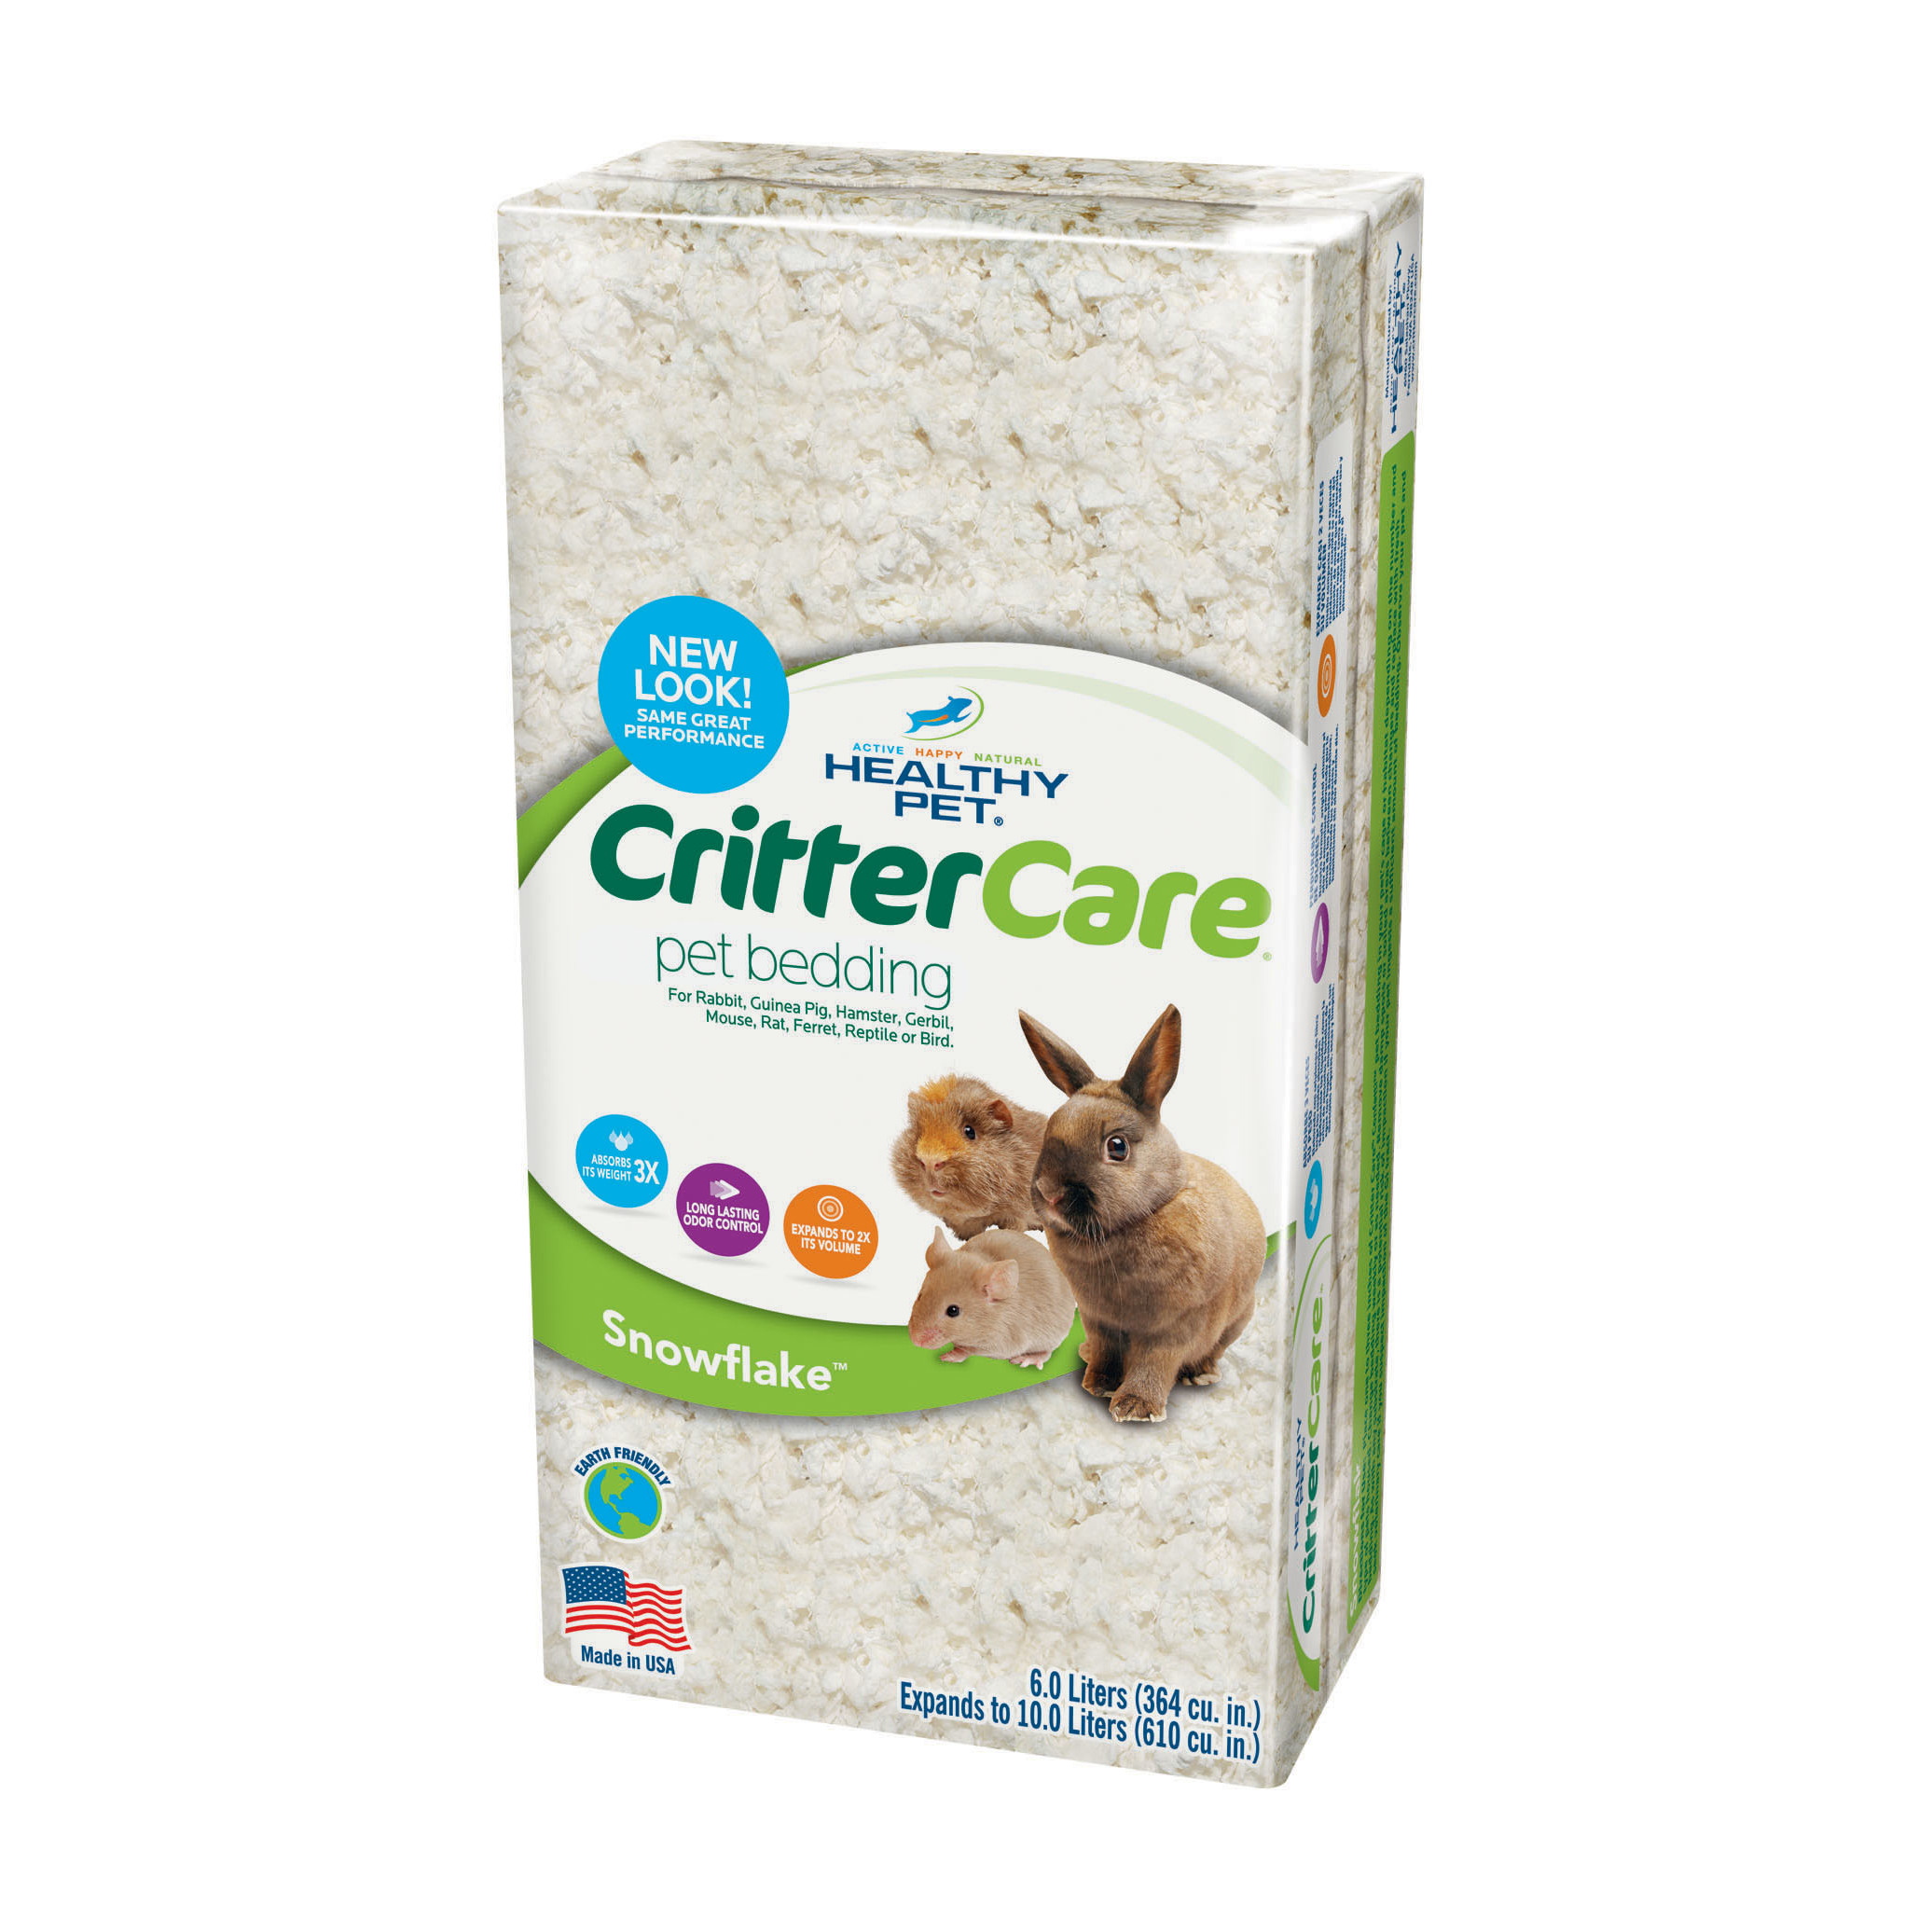 Healthy Pet CritterCare Snowflake Bedding, 10L